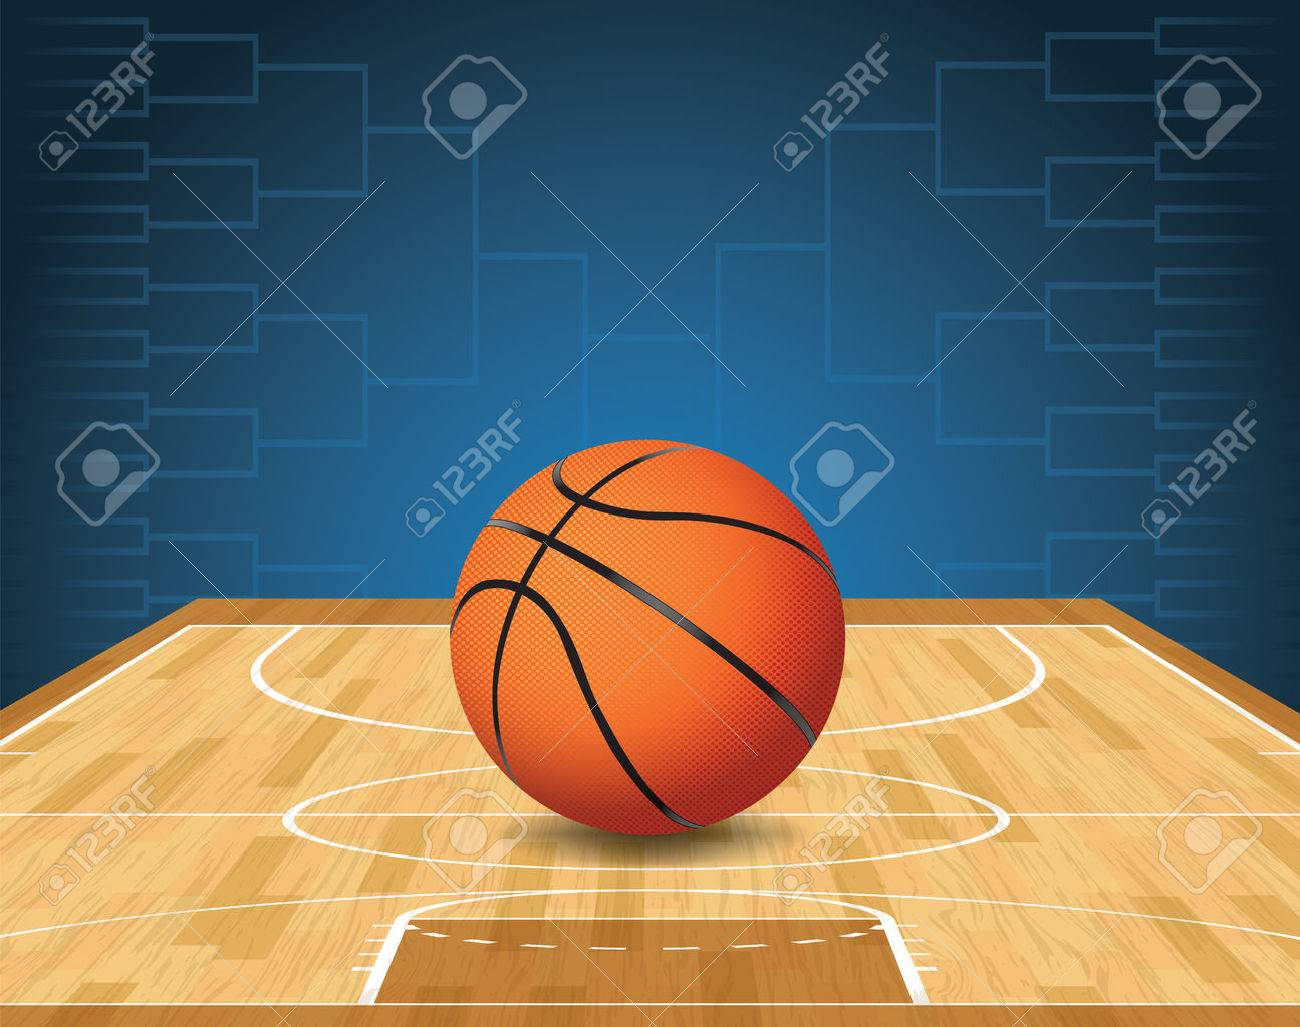 An illustration of a basketball on a court and a tournament bracket in the background. Vector EPS 10 available. EPS file is layered and contains transparencies. - 35487390